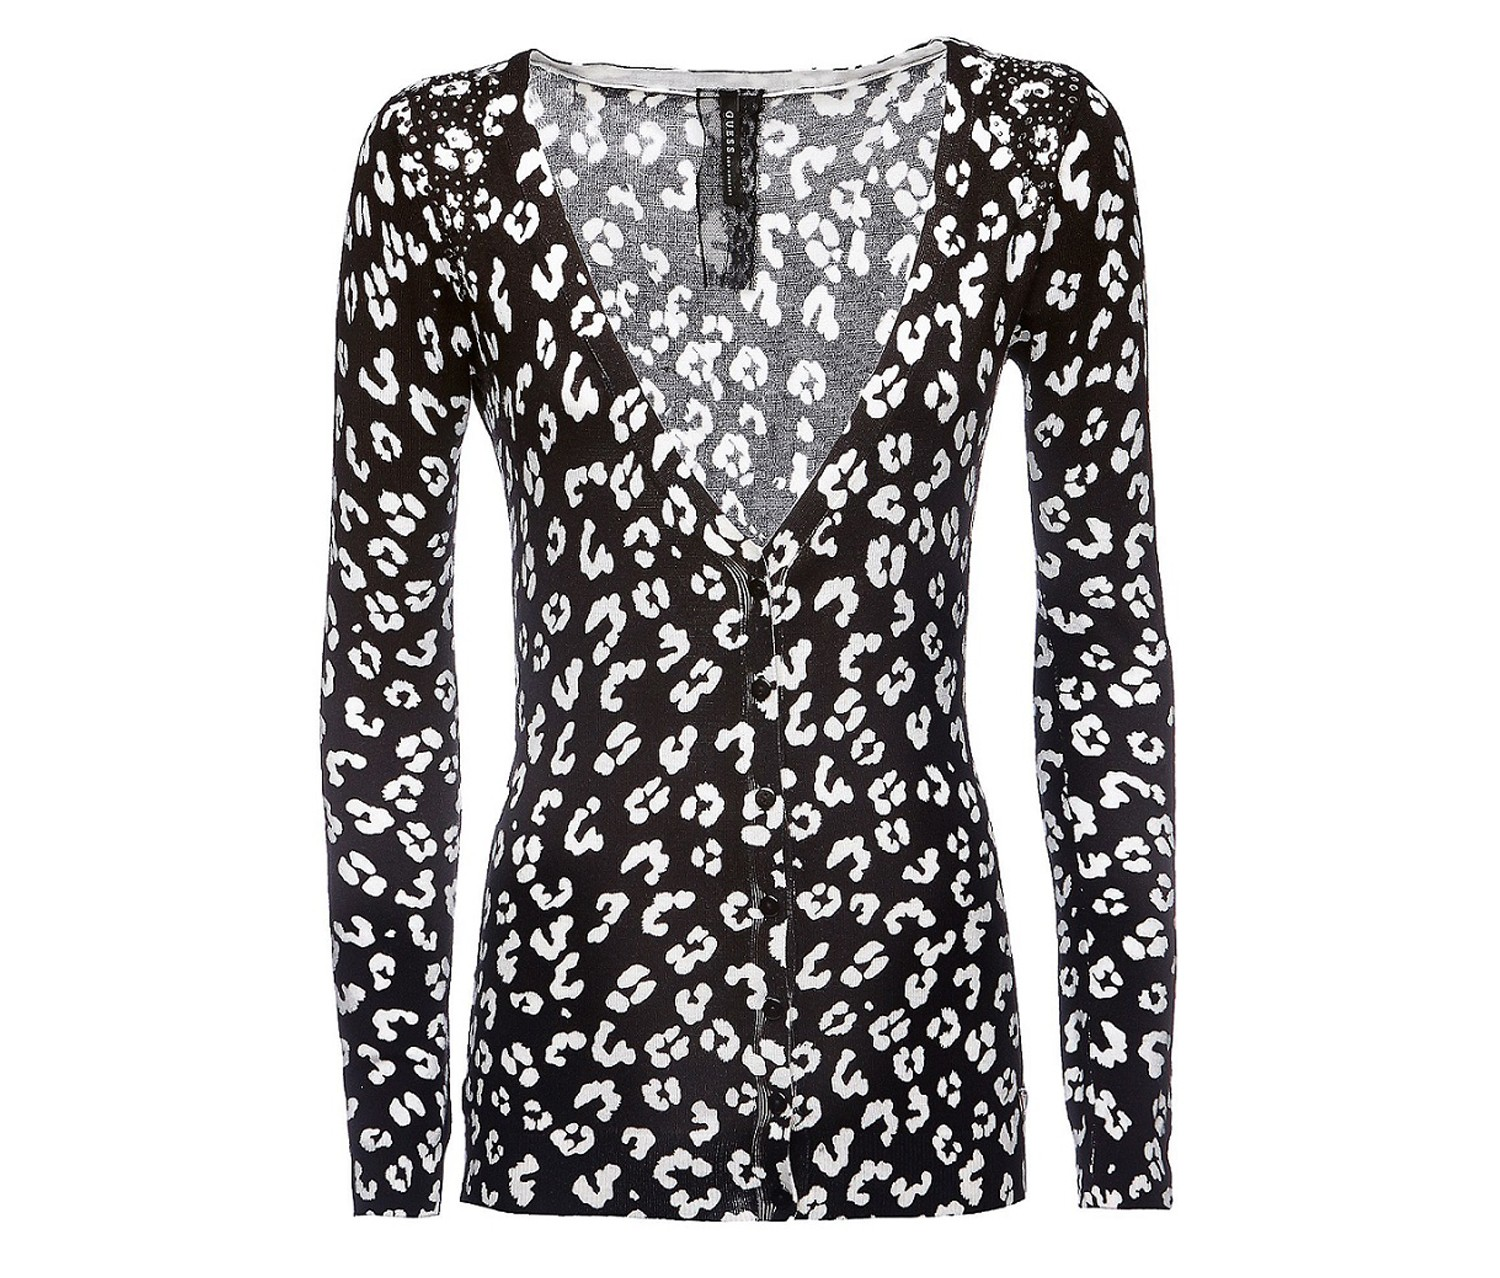 Guess Women's Animal Print Cardigan, Black/White - Brands For Less